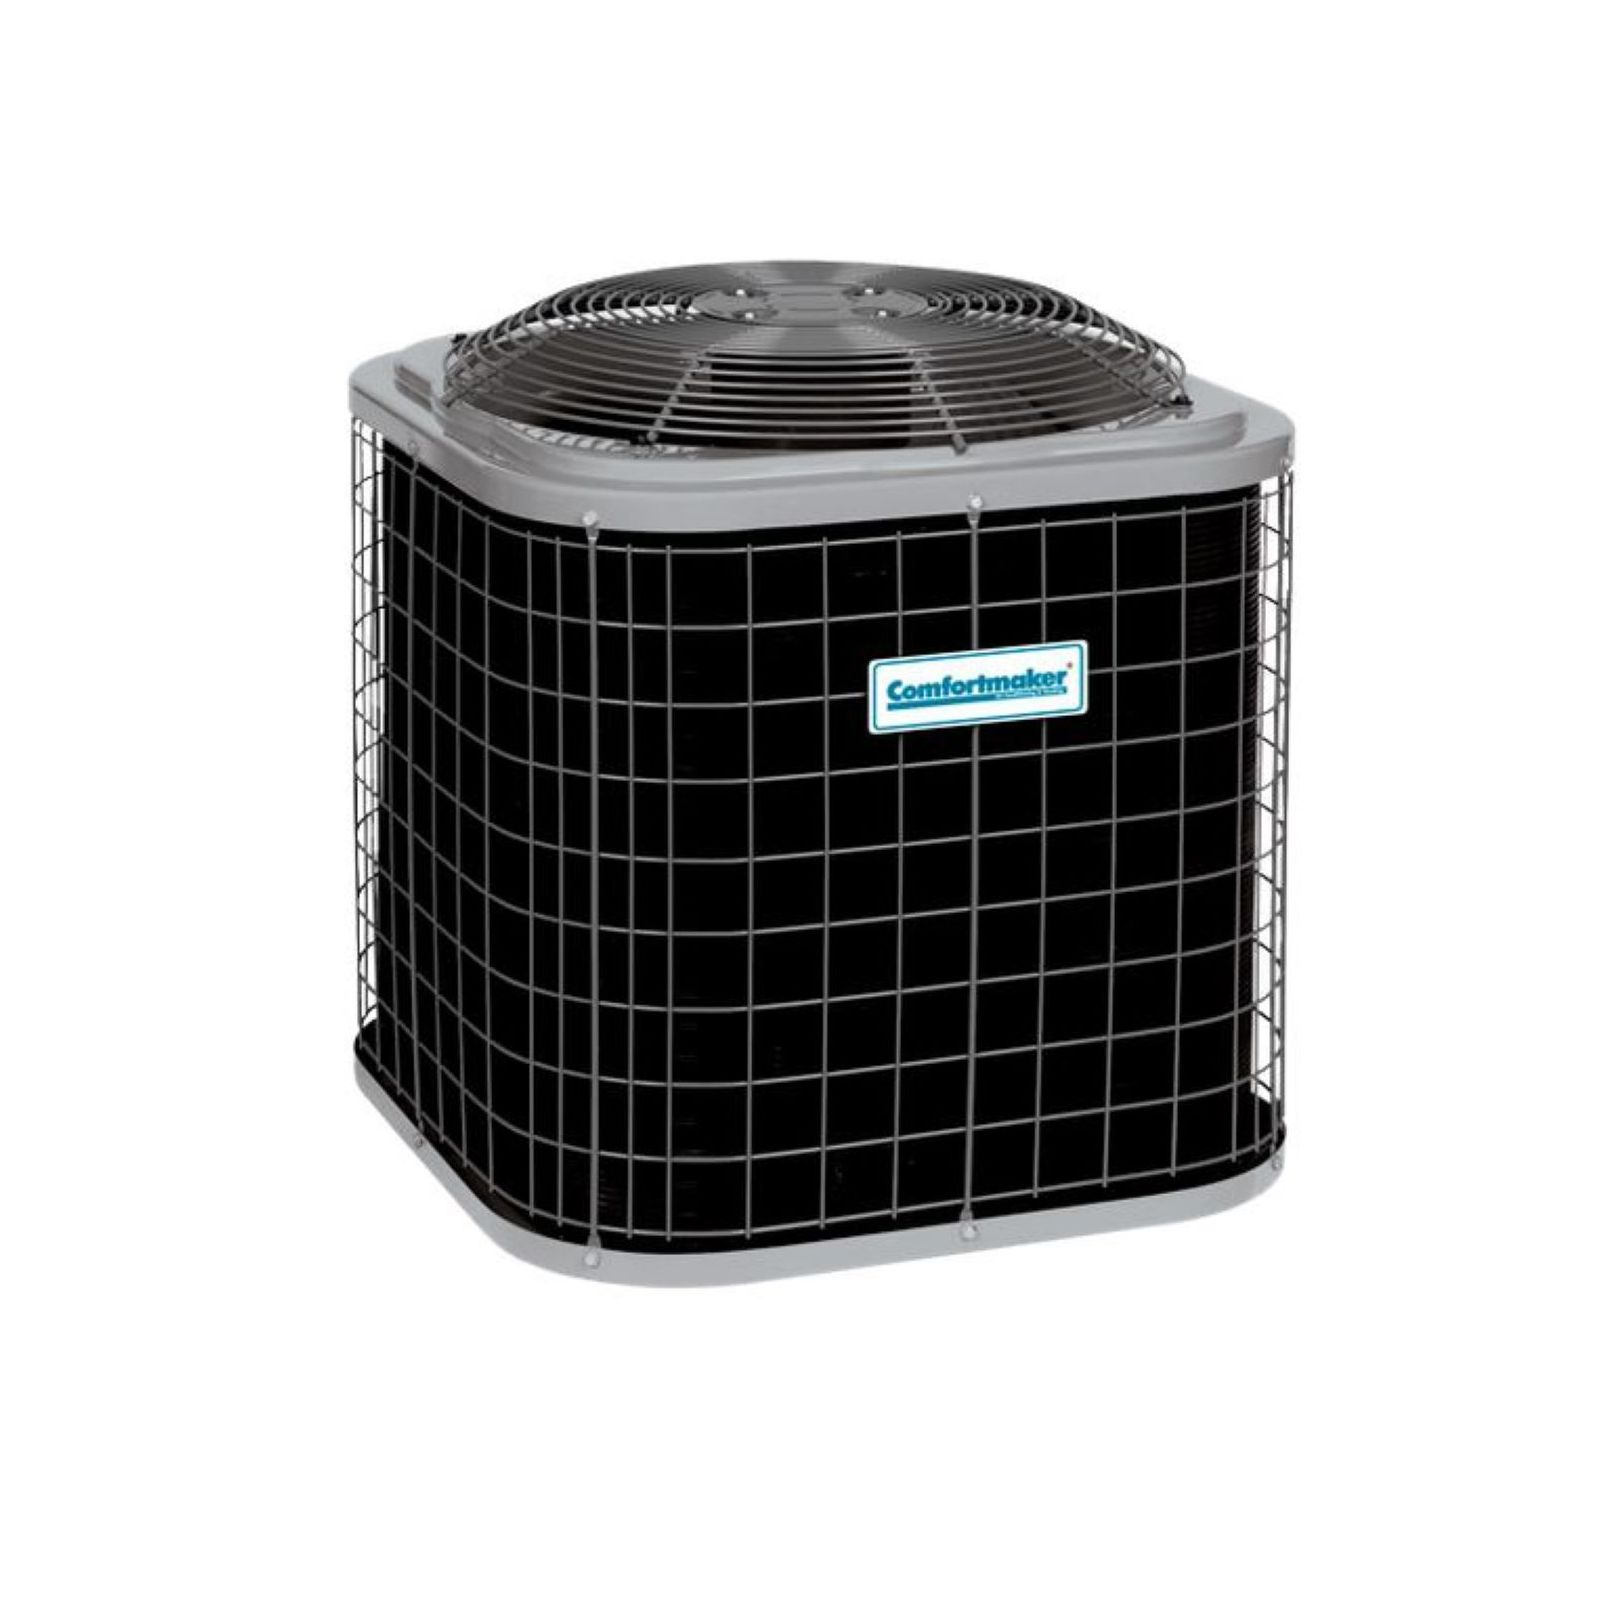 Comfortmaker Nxa448gkc Performance Series 4 Ton 14 Seer R410a Air Conditioner With Coil Guard Grille 208 230 1 60 1428408500590